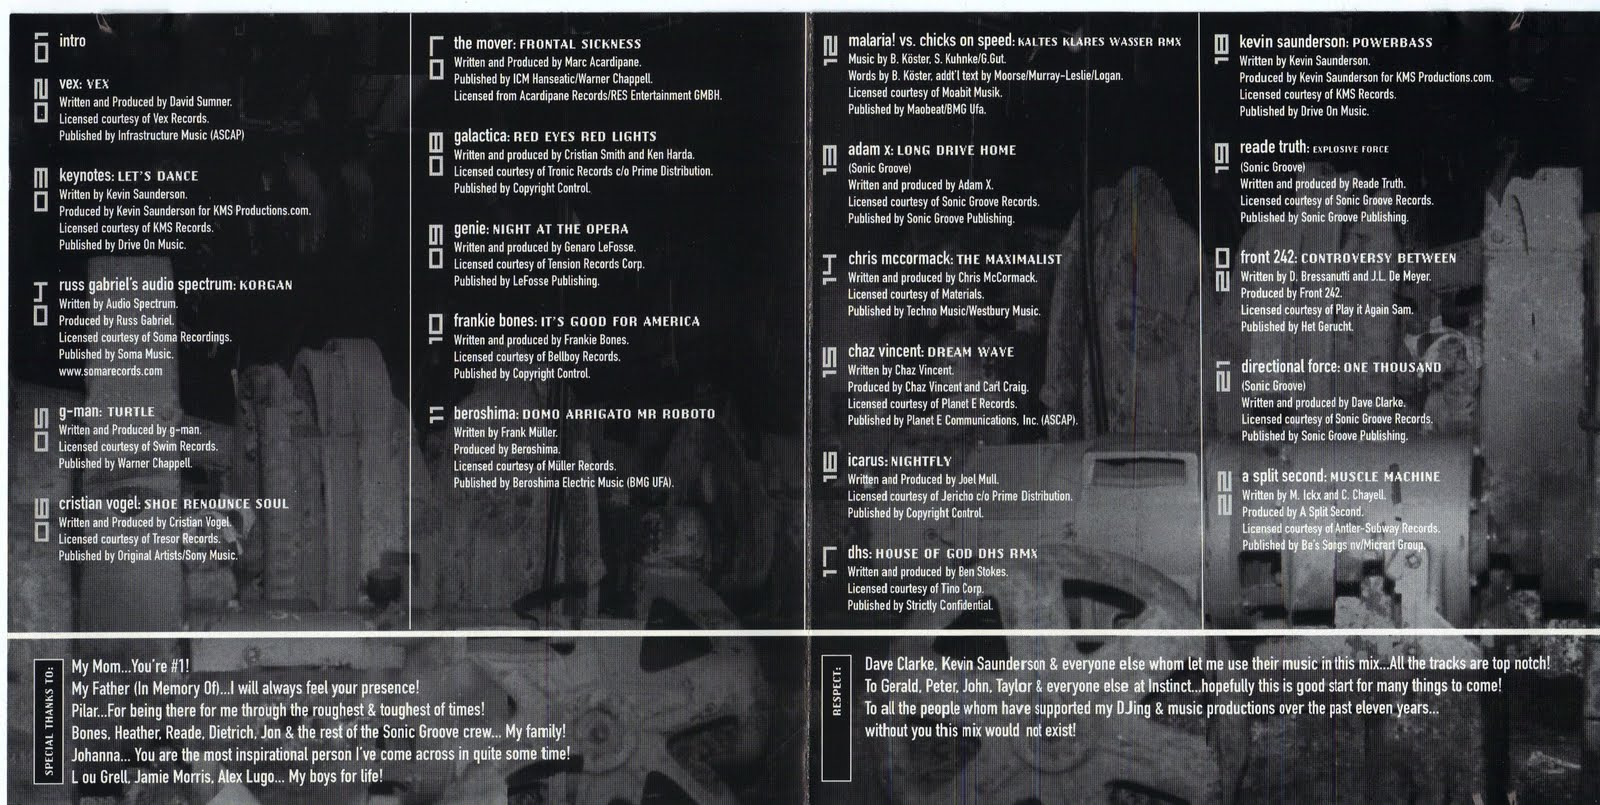 cd liner notes template word - front 242 collector compilation of the week adam x on